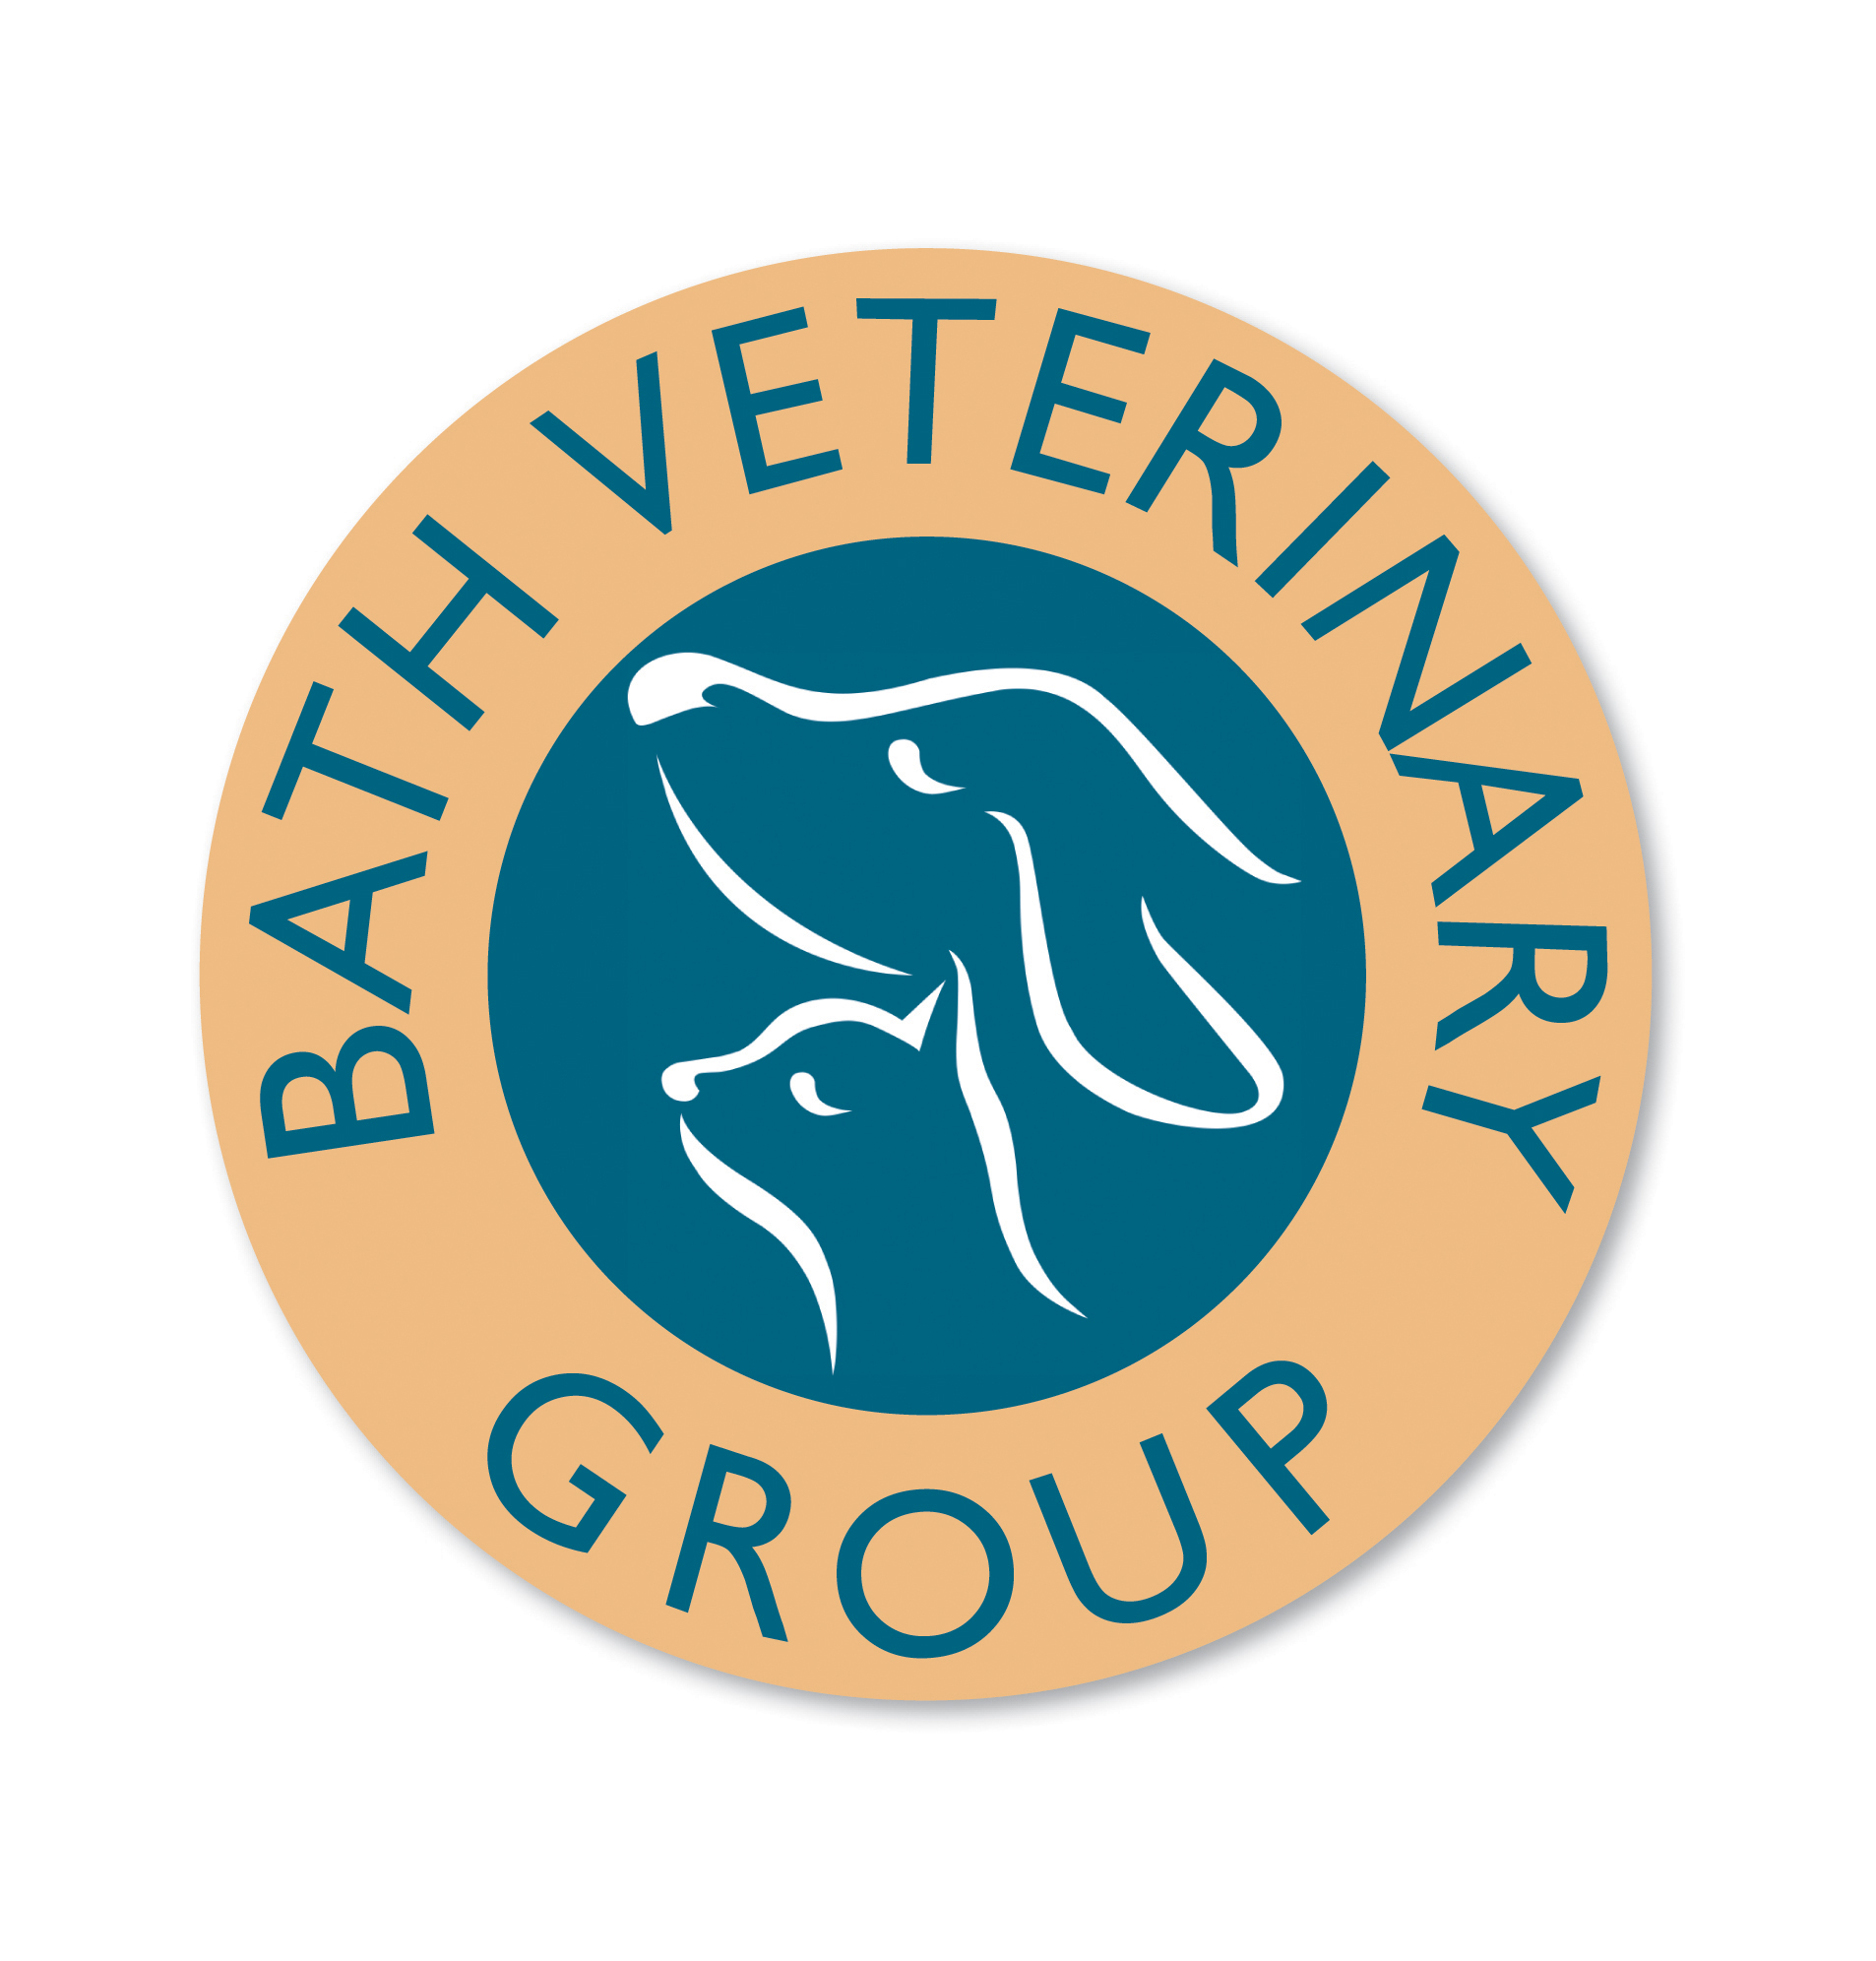 Bath Veterinary Group - Saltford